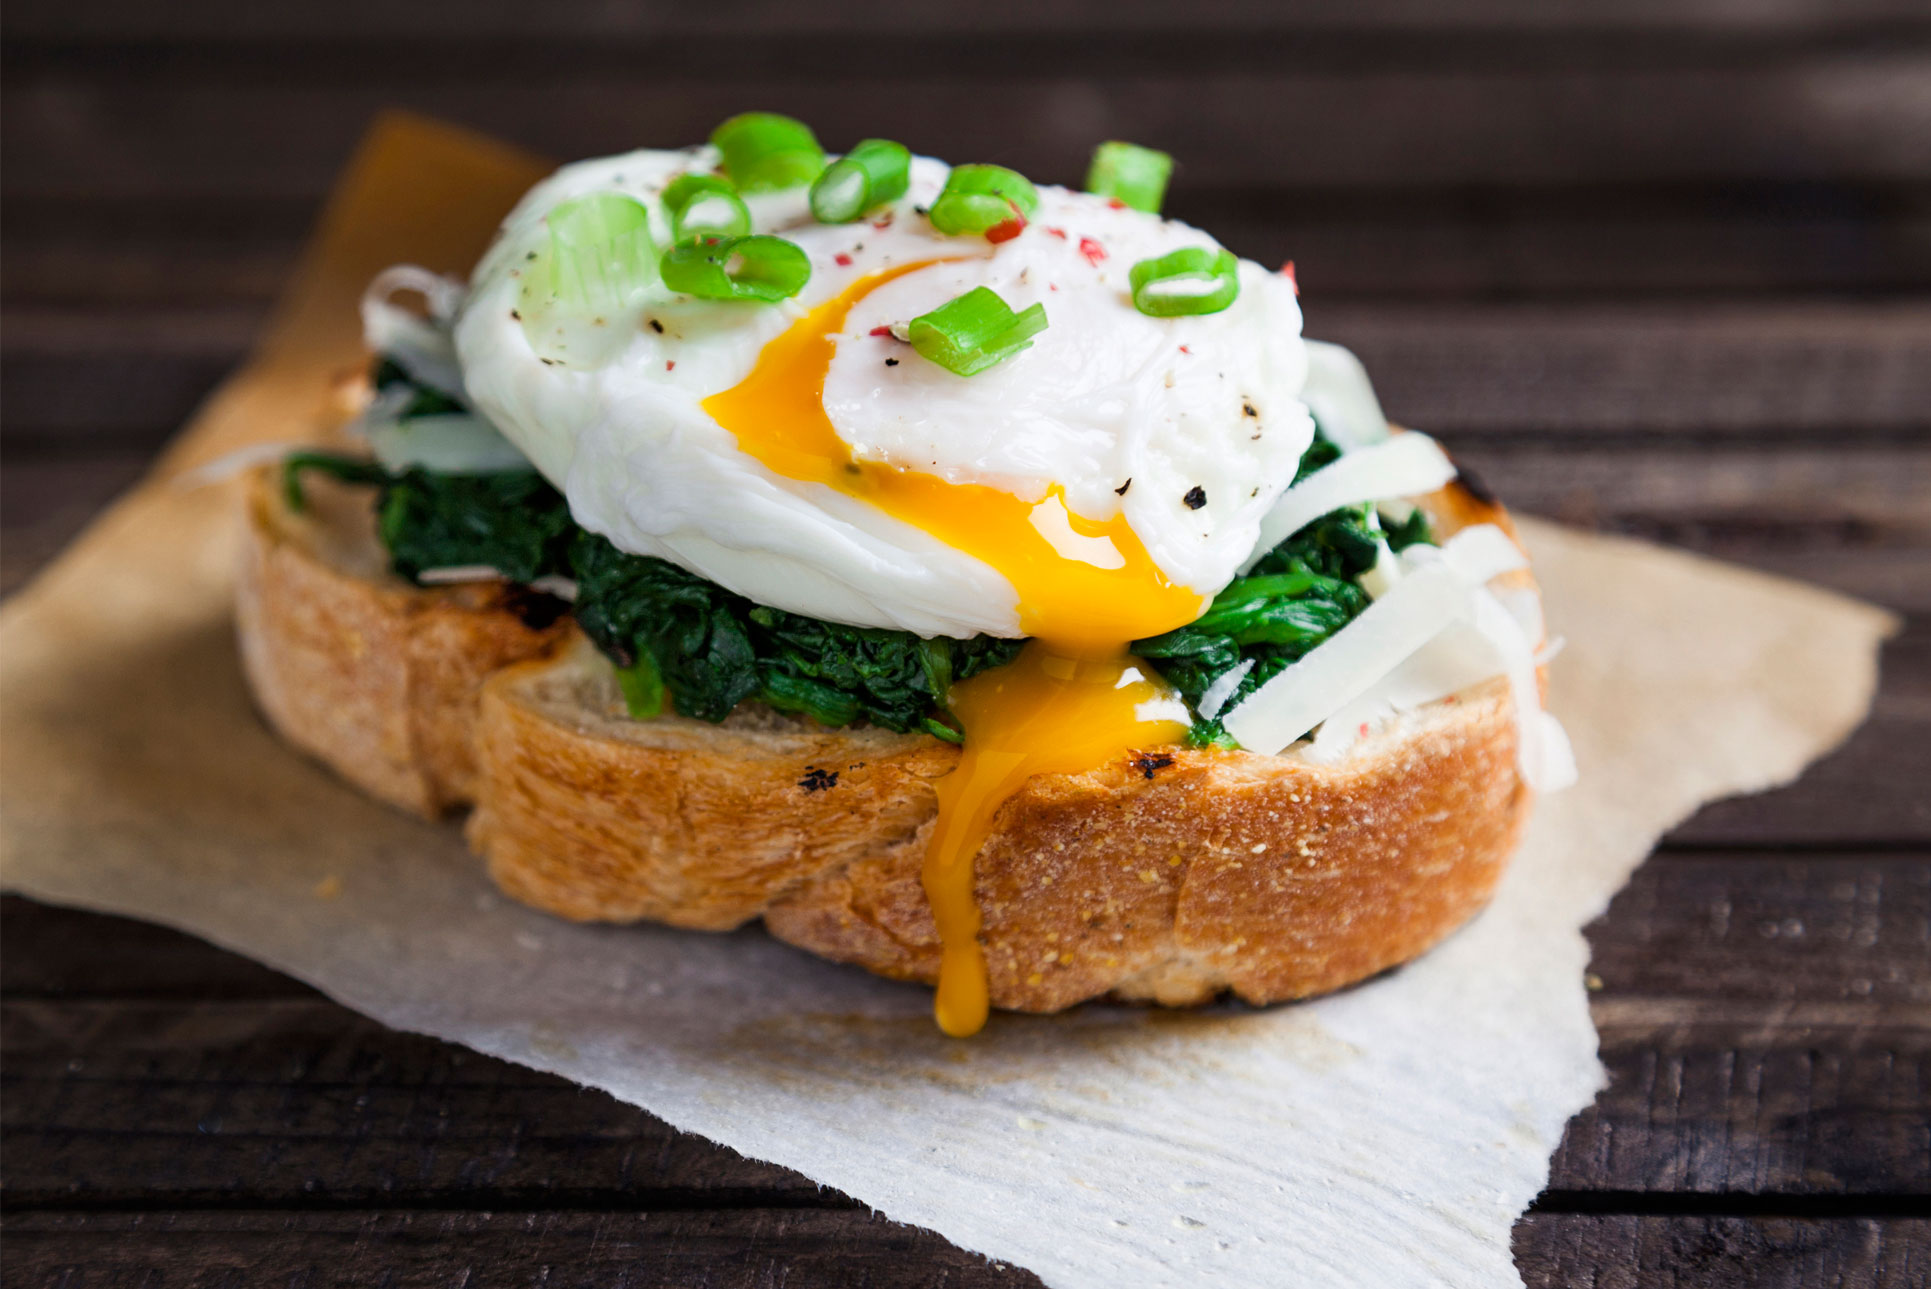 poached-egg-on-bread.jpg